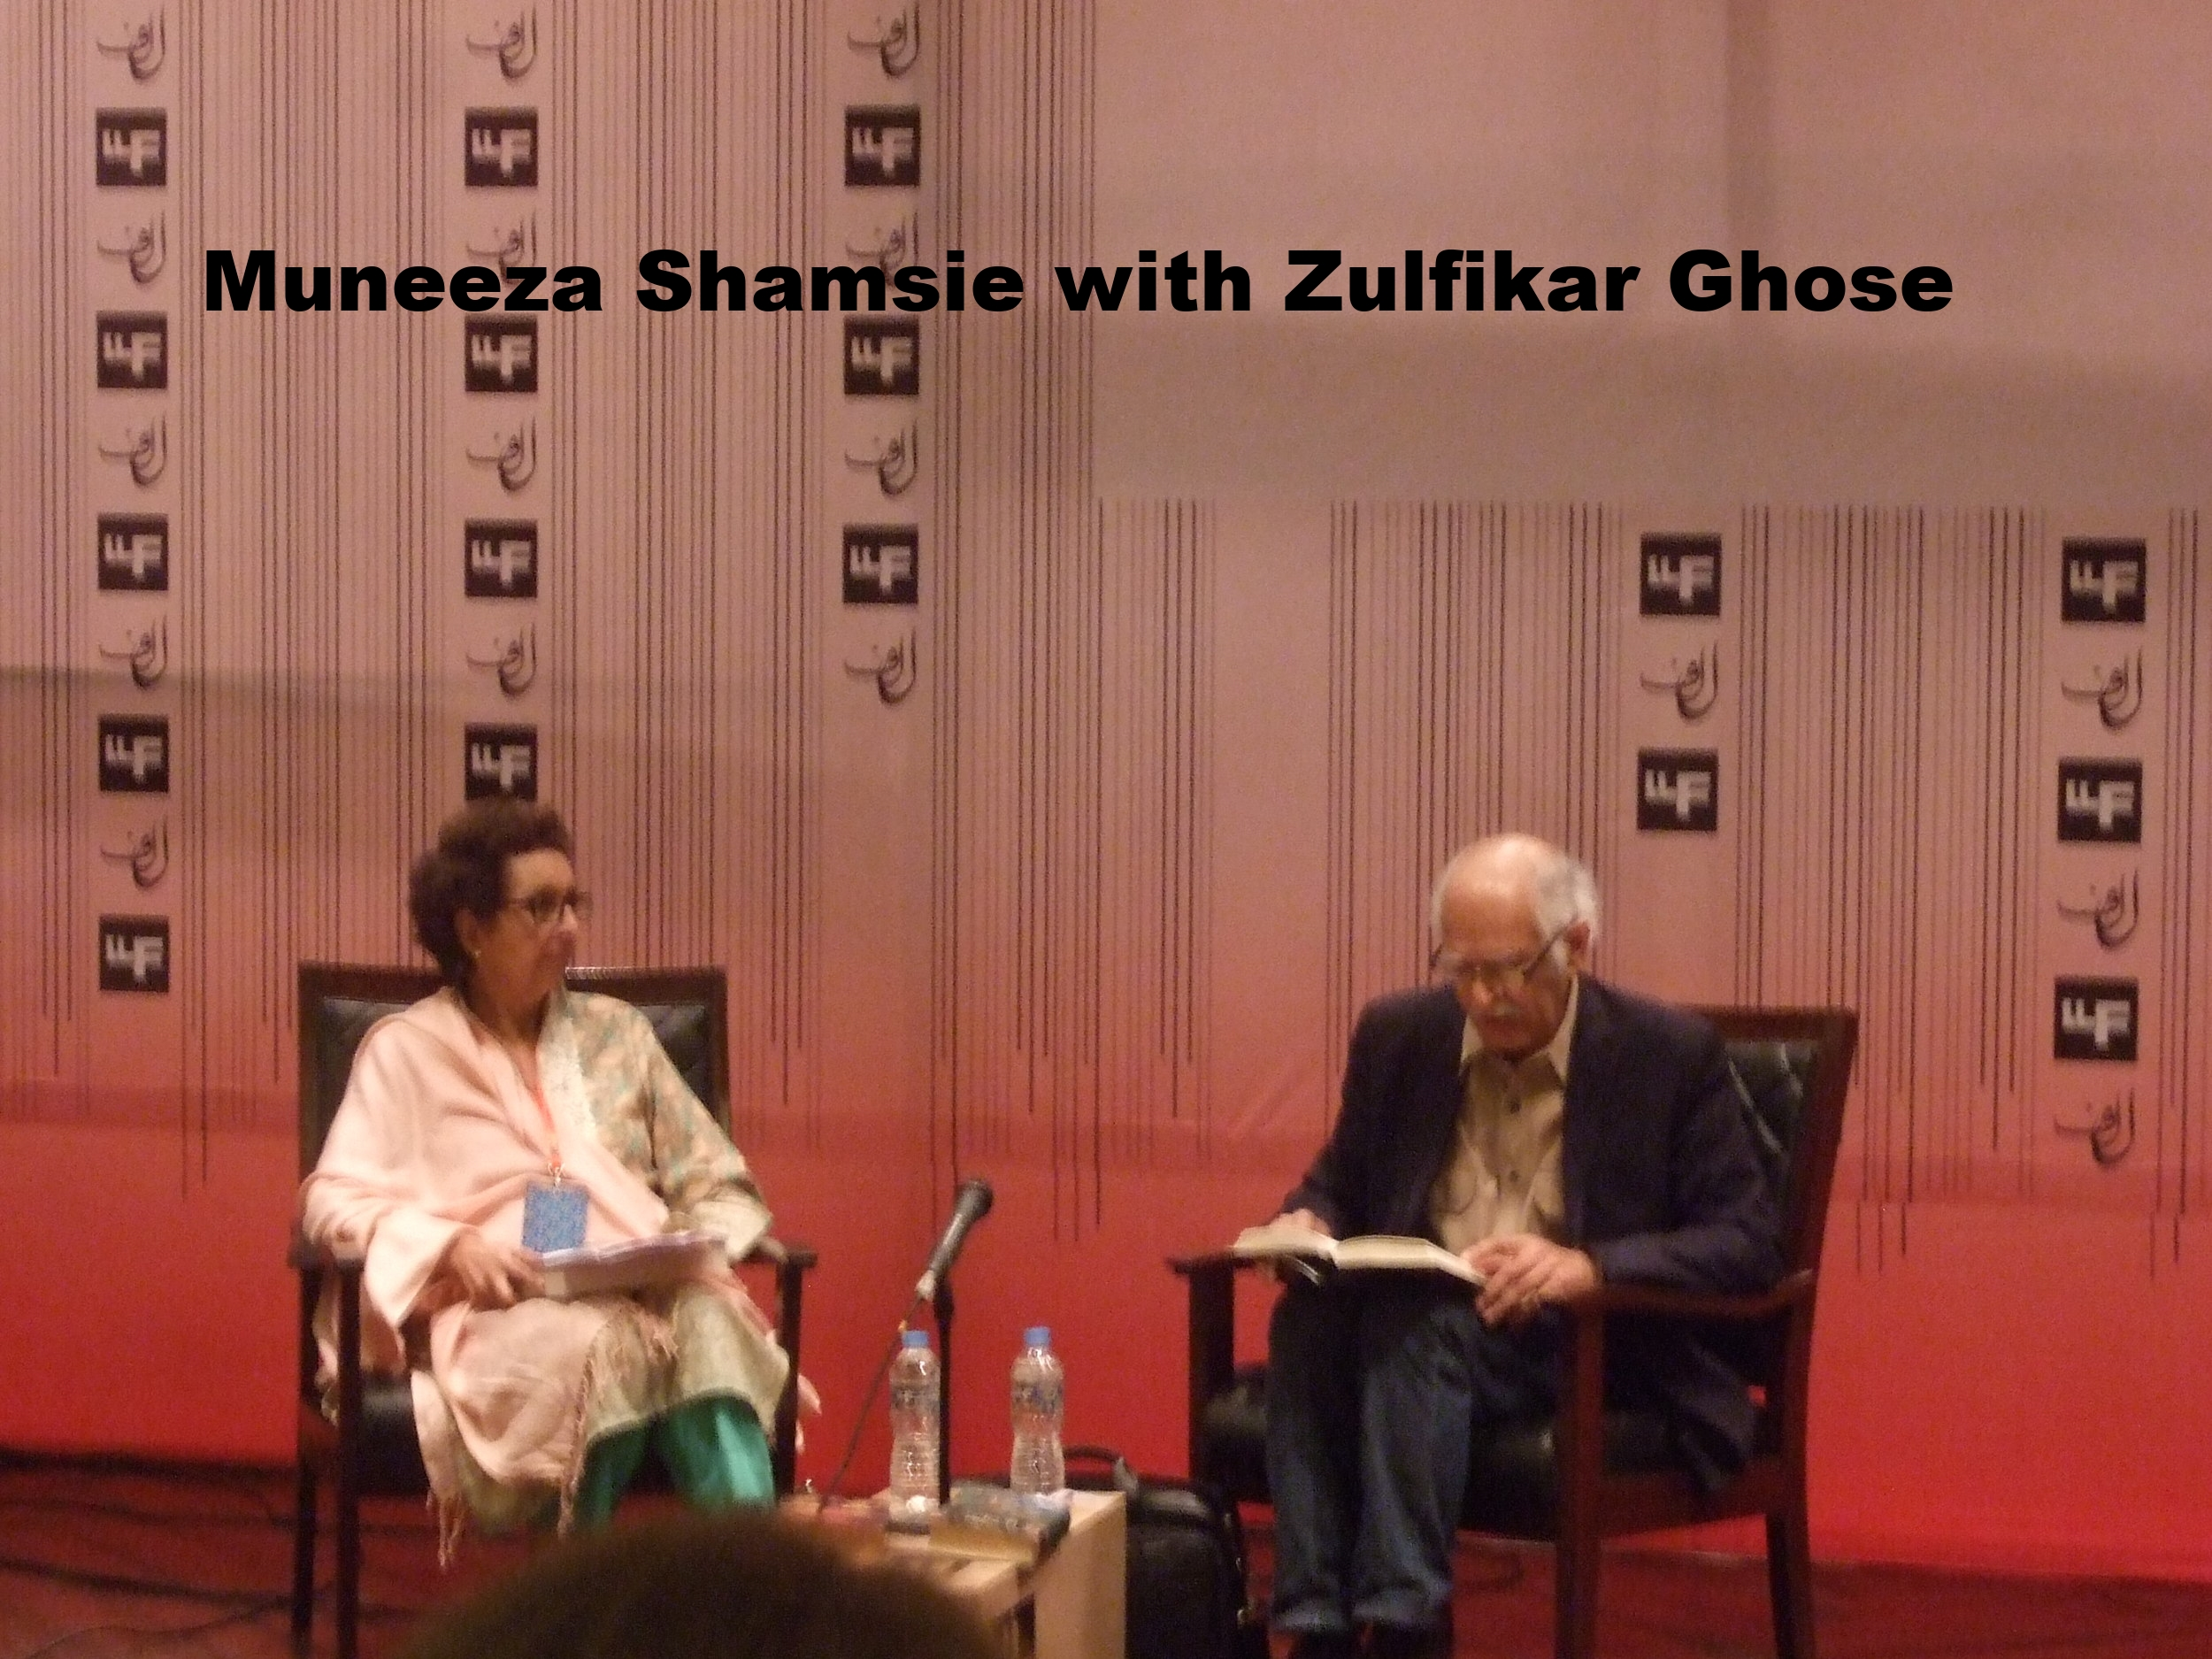 Zulfikar Ghose with Muneeza Shamsie